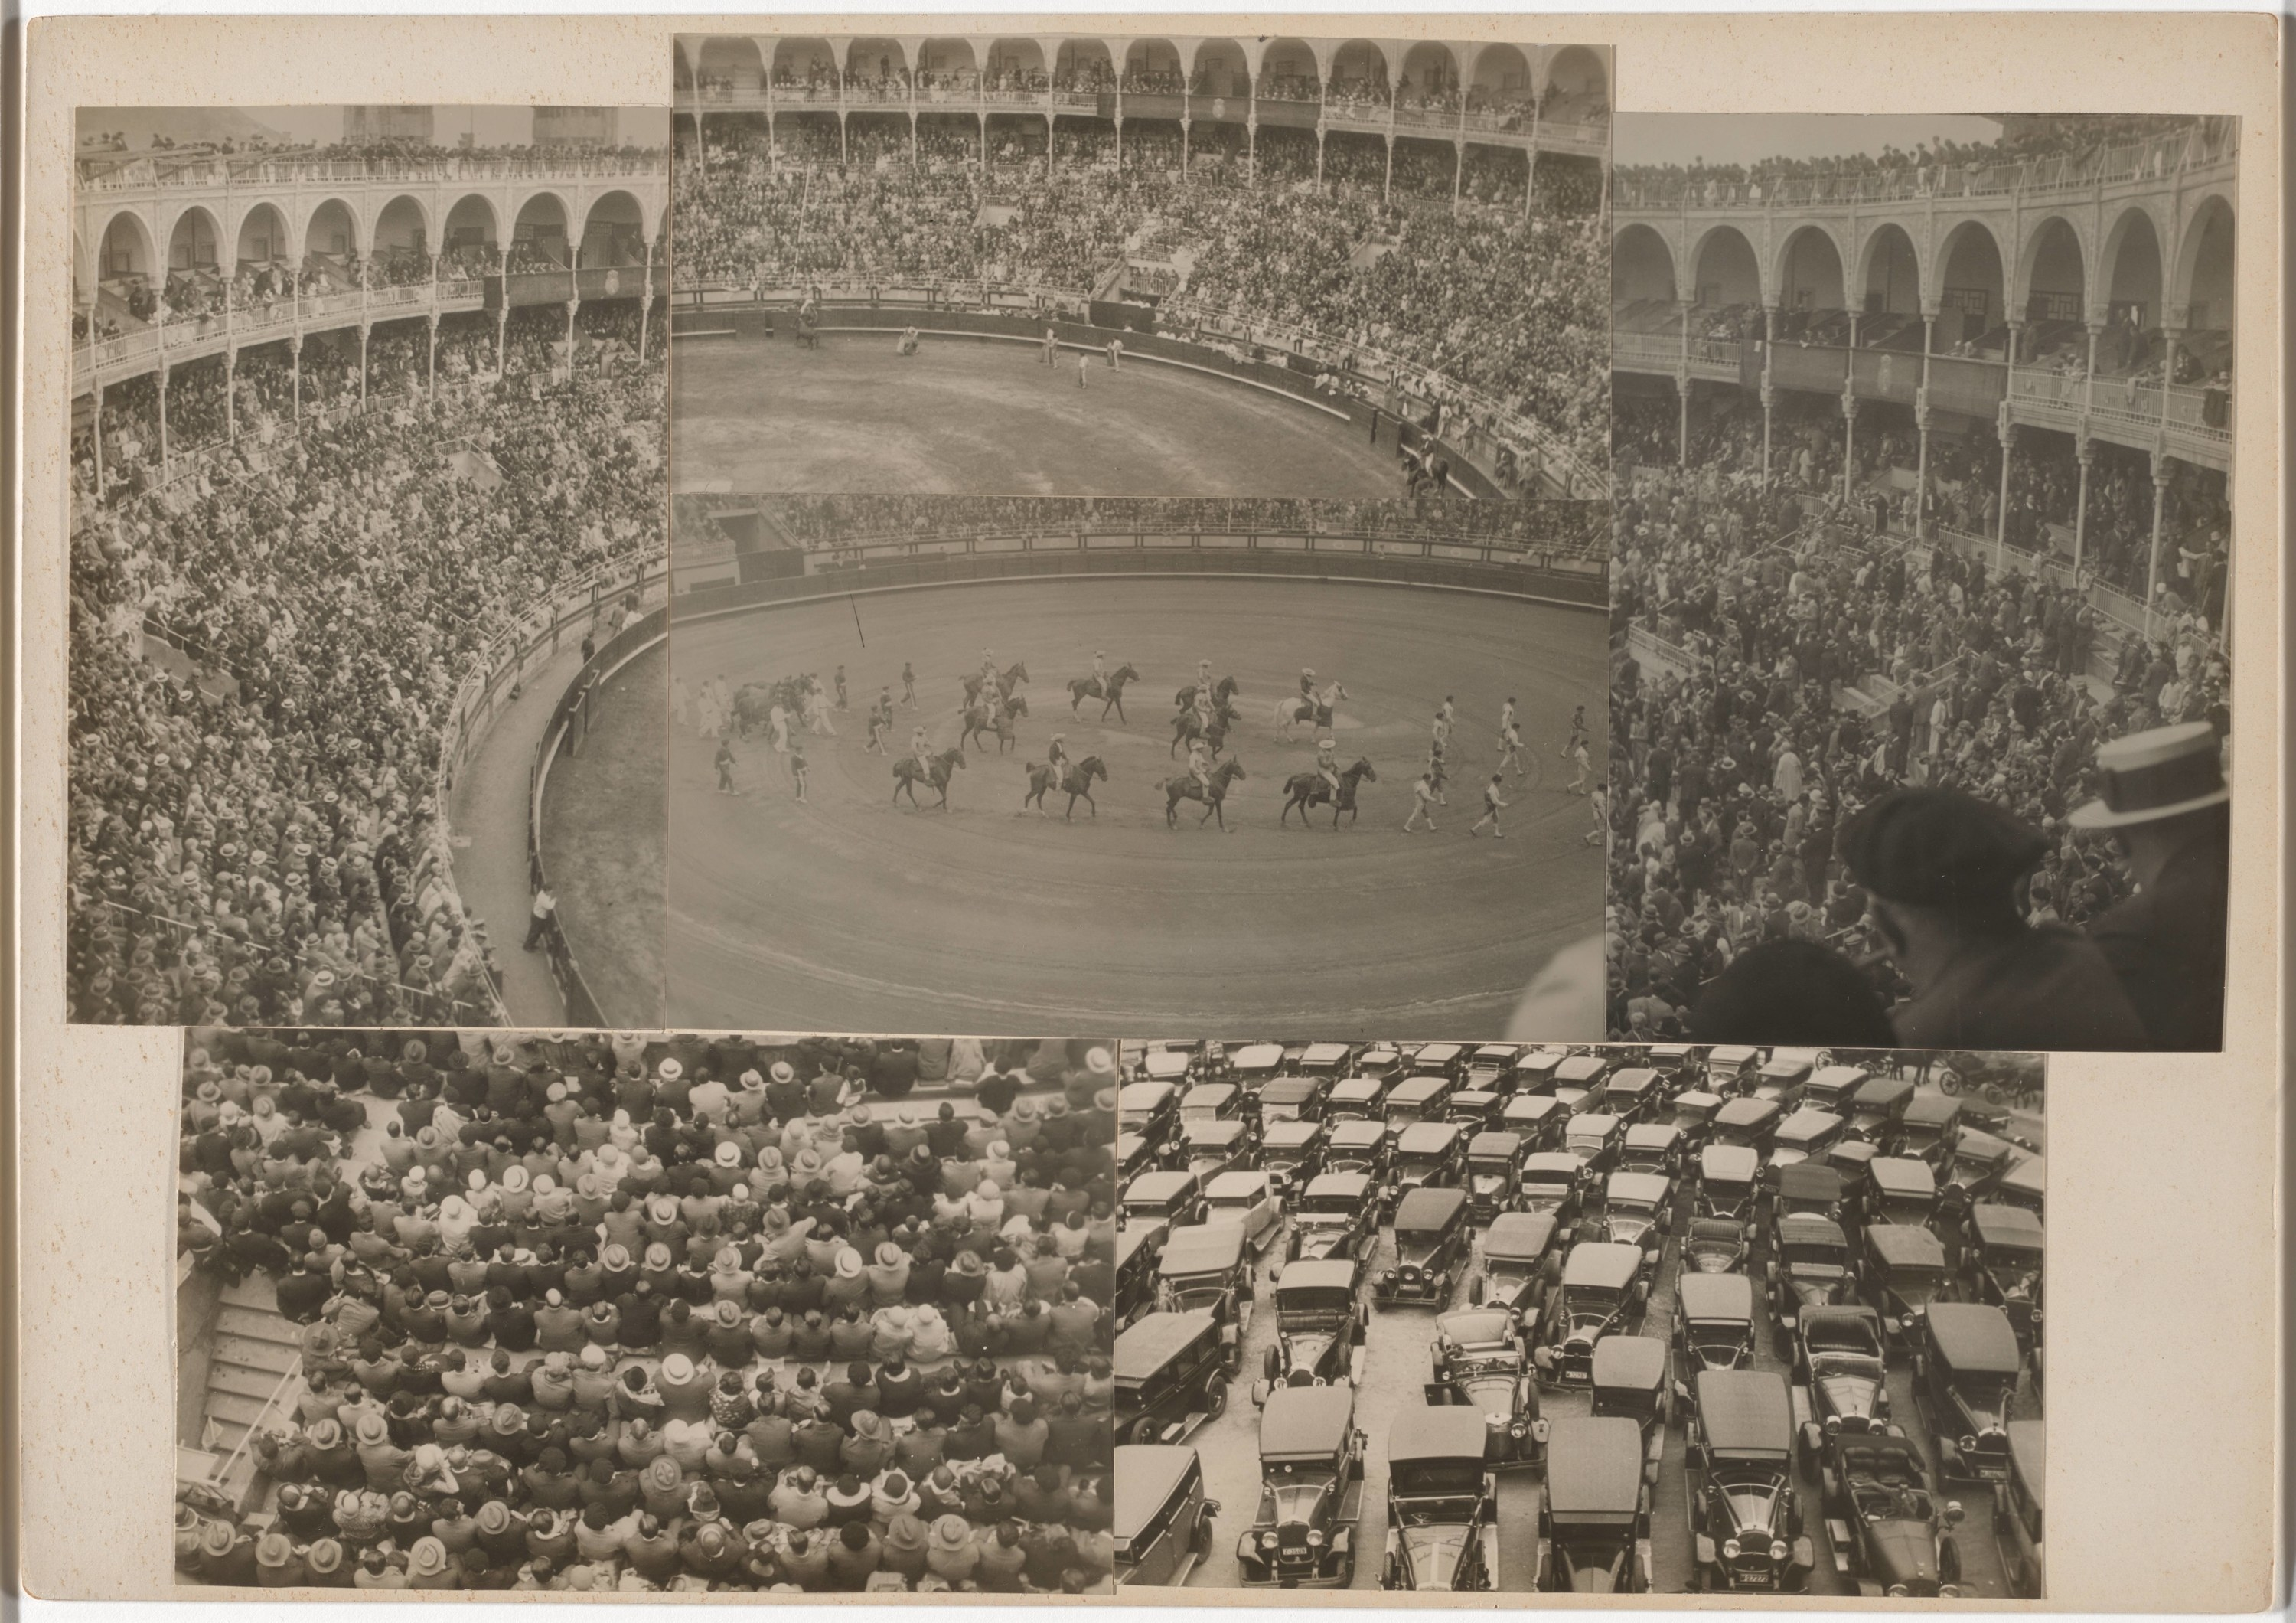 A collage of five photos which show people in the stands, a bull fight, horses and cars